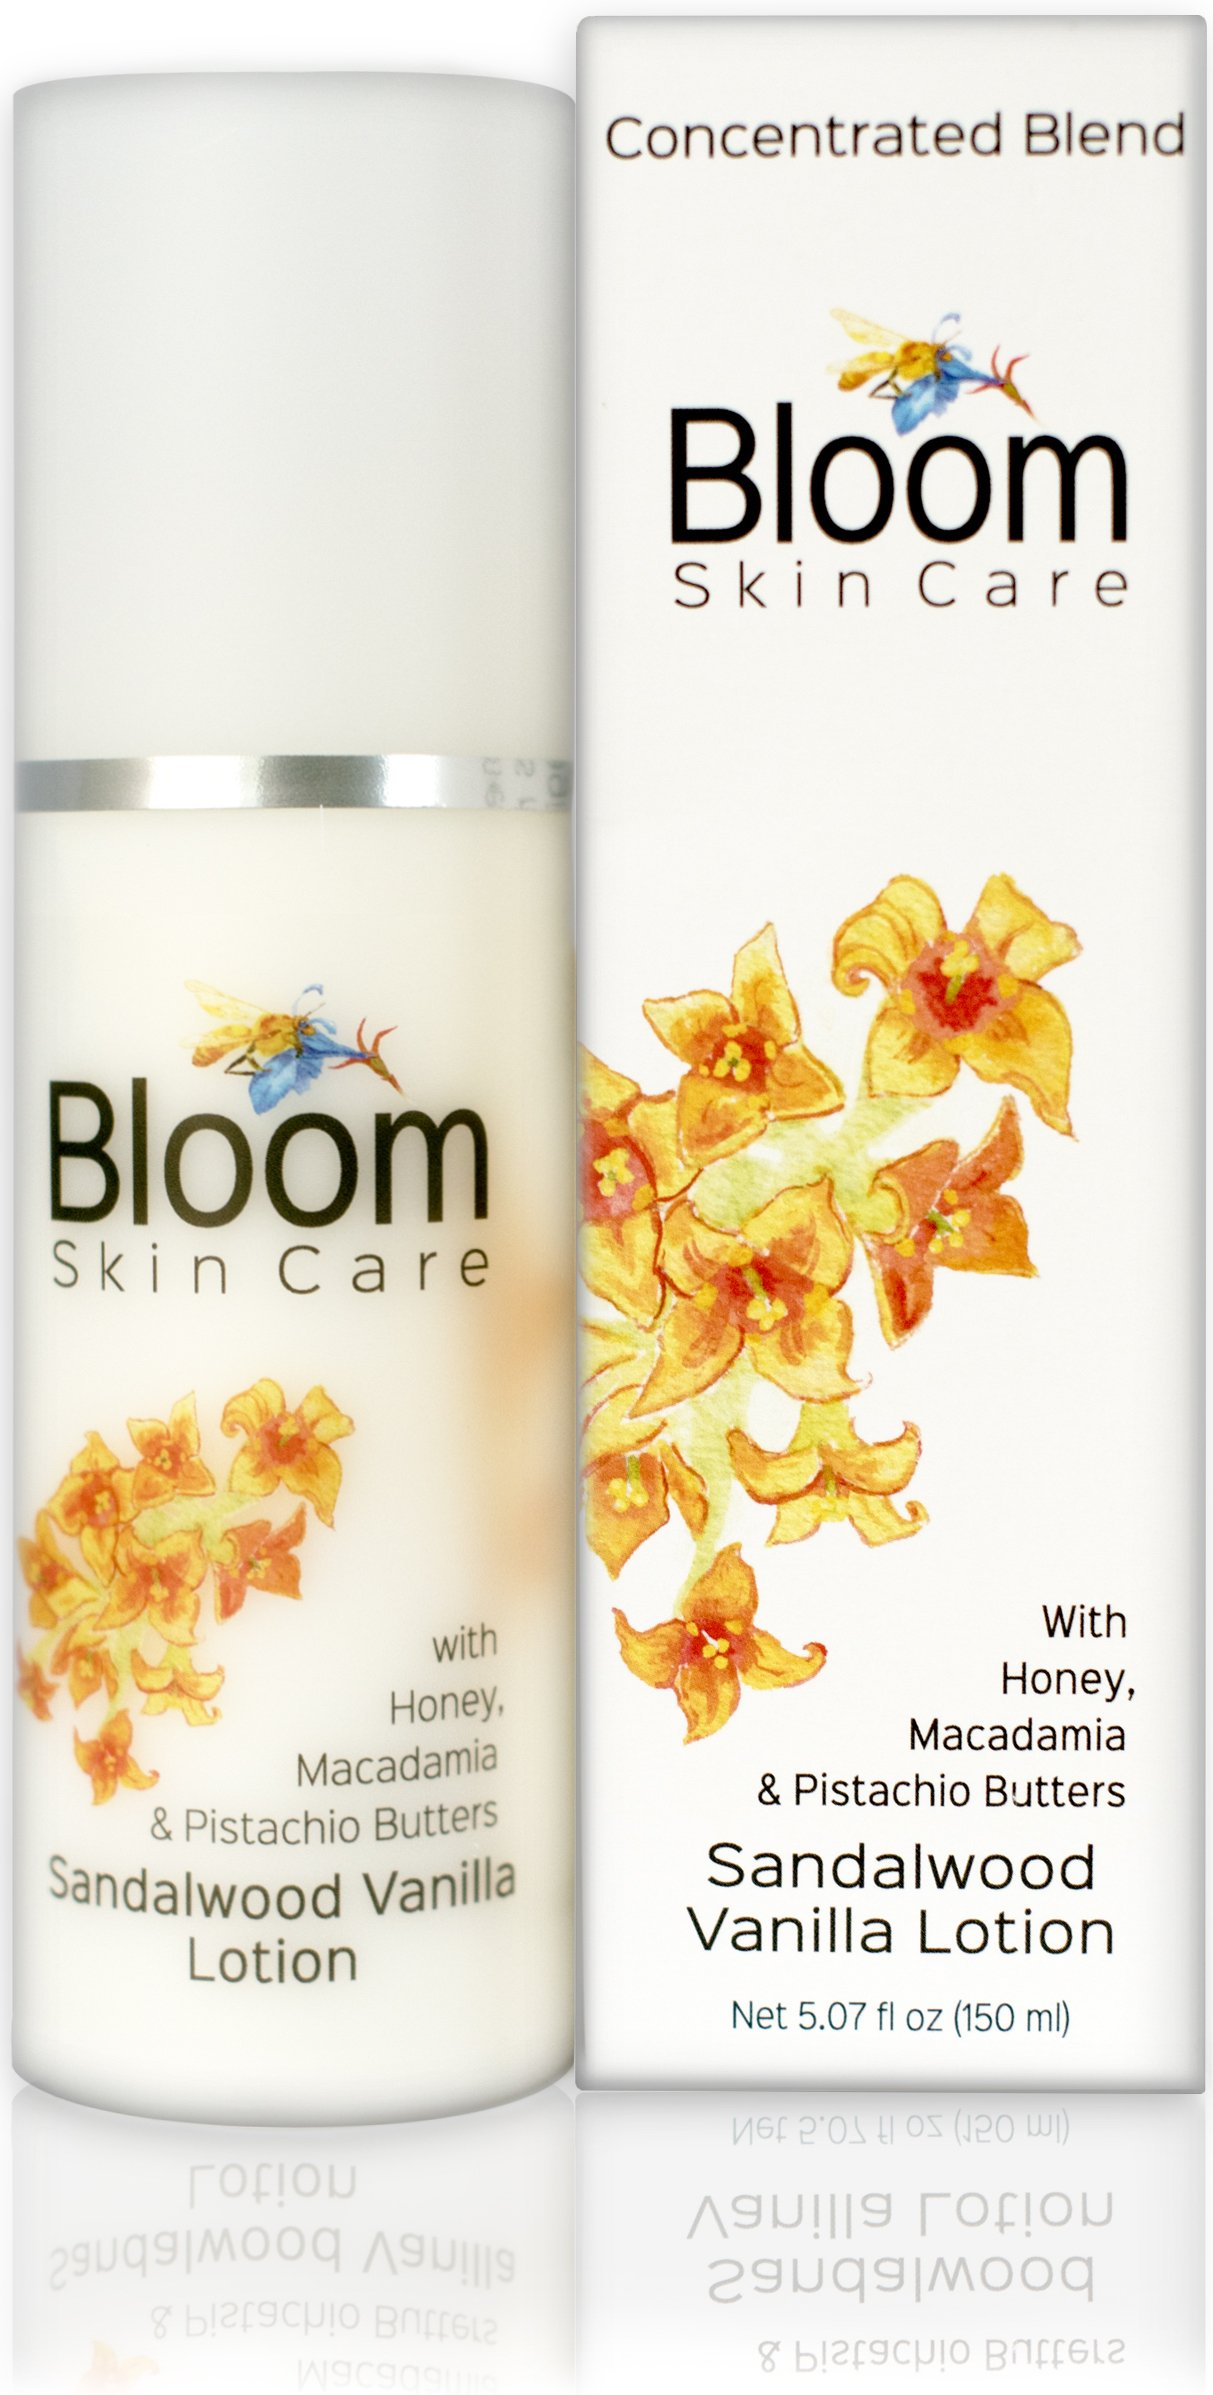 Bloom Skin Care Hand and Body Lotion - Sandalwood Vanilla 5.07 oz - Natural Moisturizing Cream for Women and Men - Paraben Free and Cruelty Free - Anti Aging with Powerful Ingredients and Honey